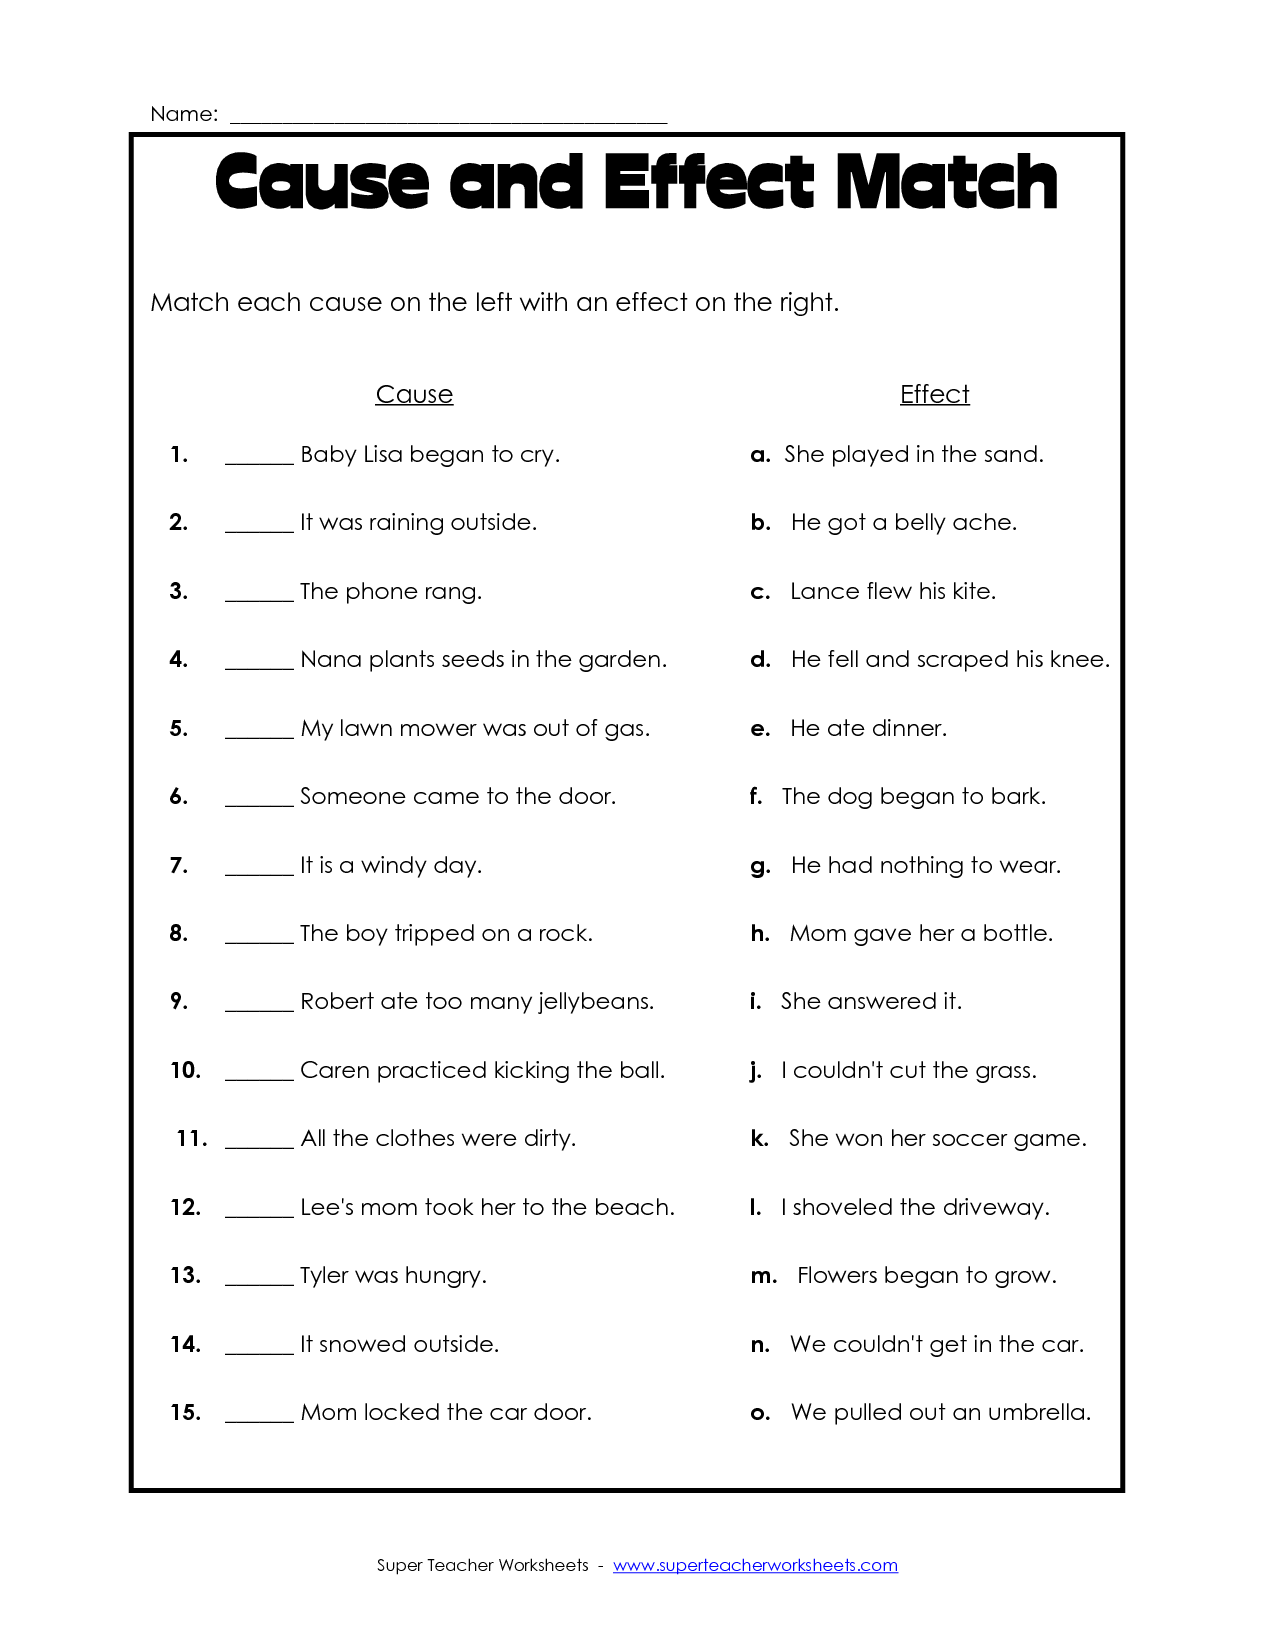 hight resolution of 22 Daily Five Cause and Effect ideas   cause and effect